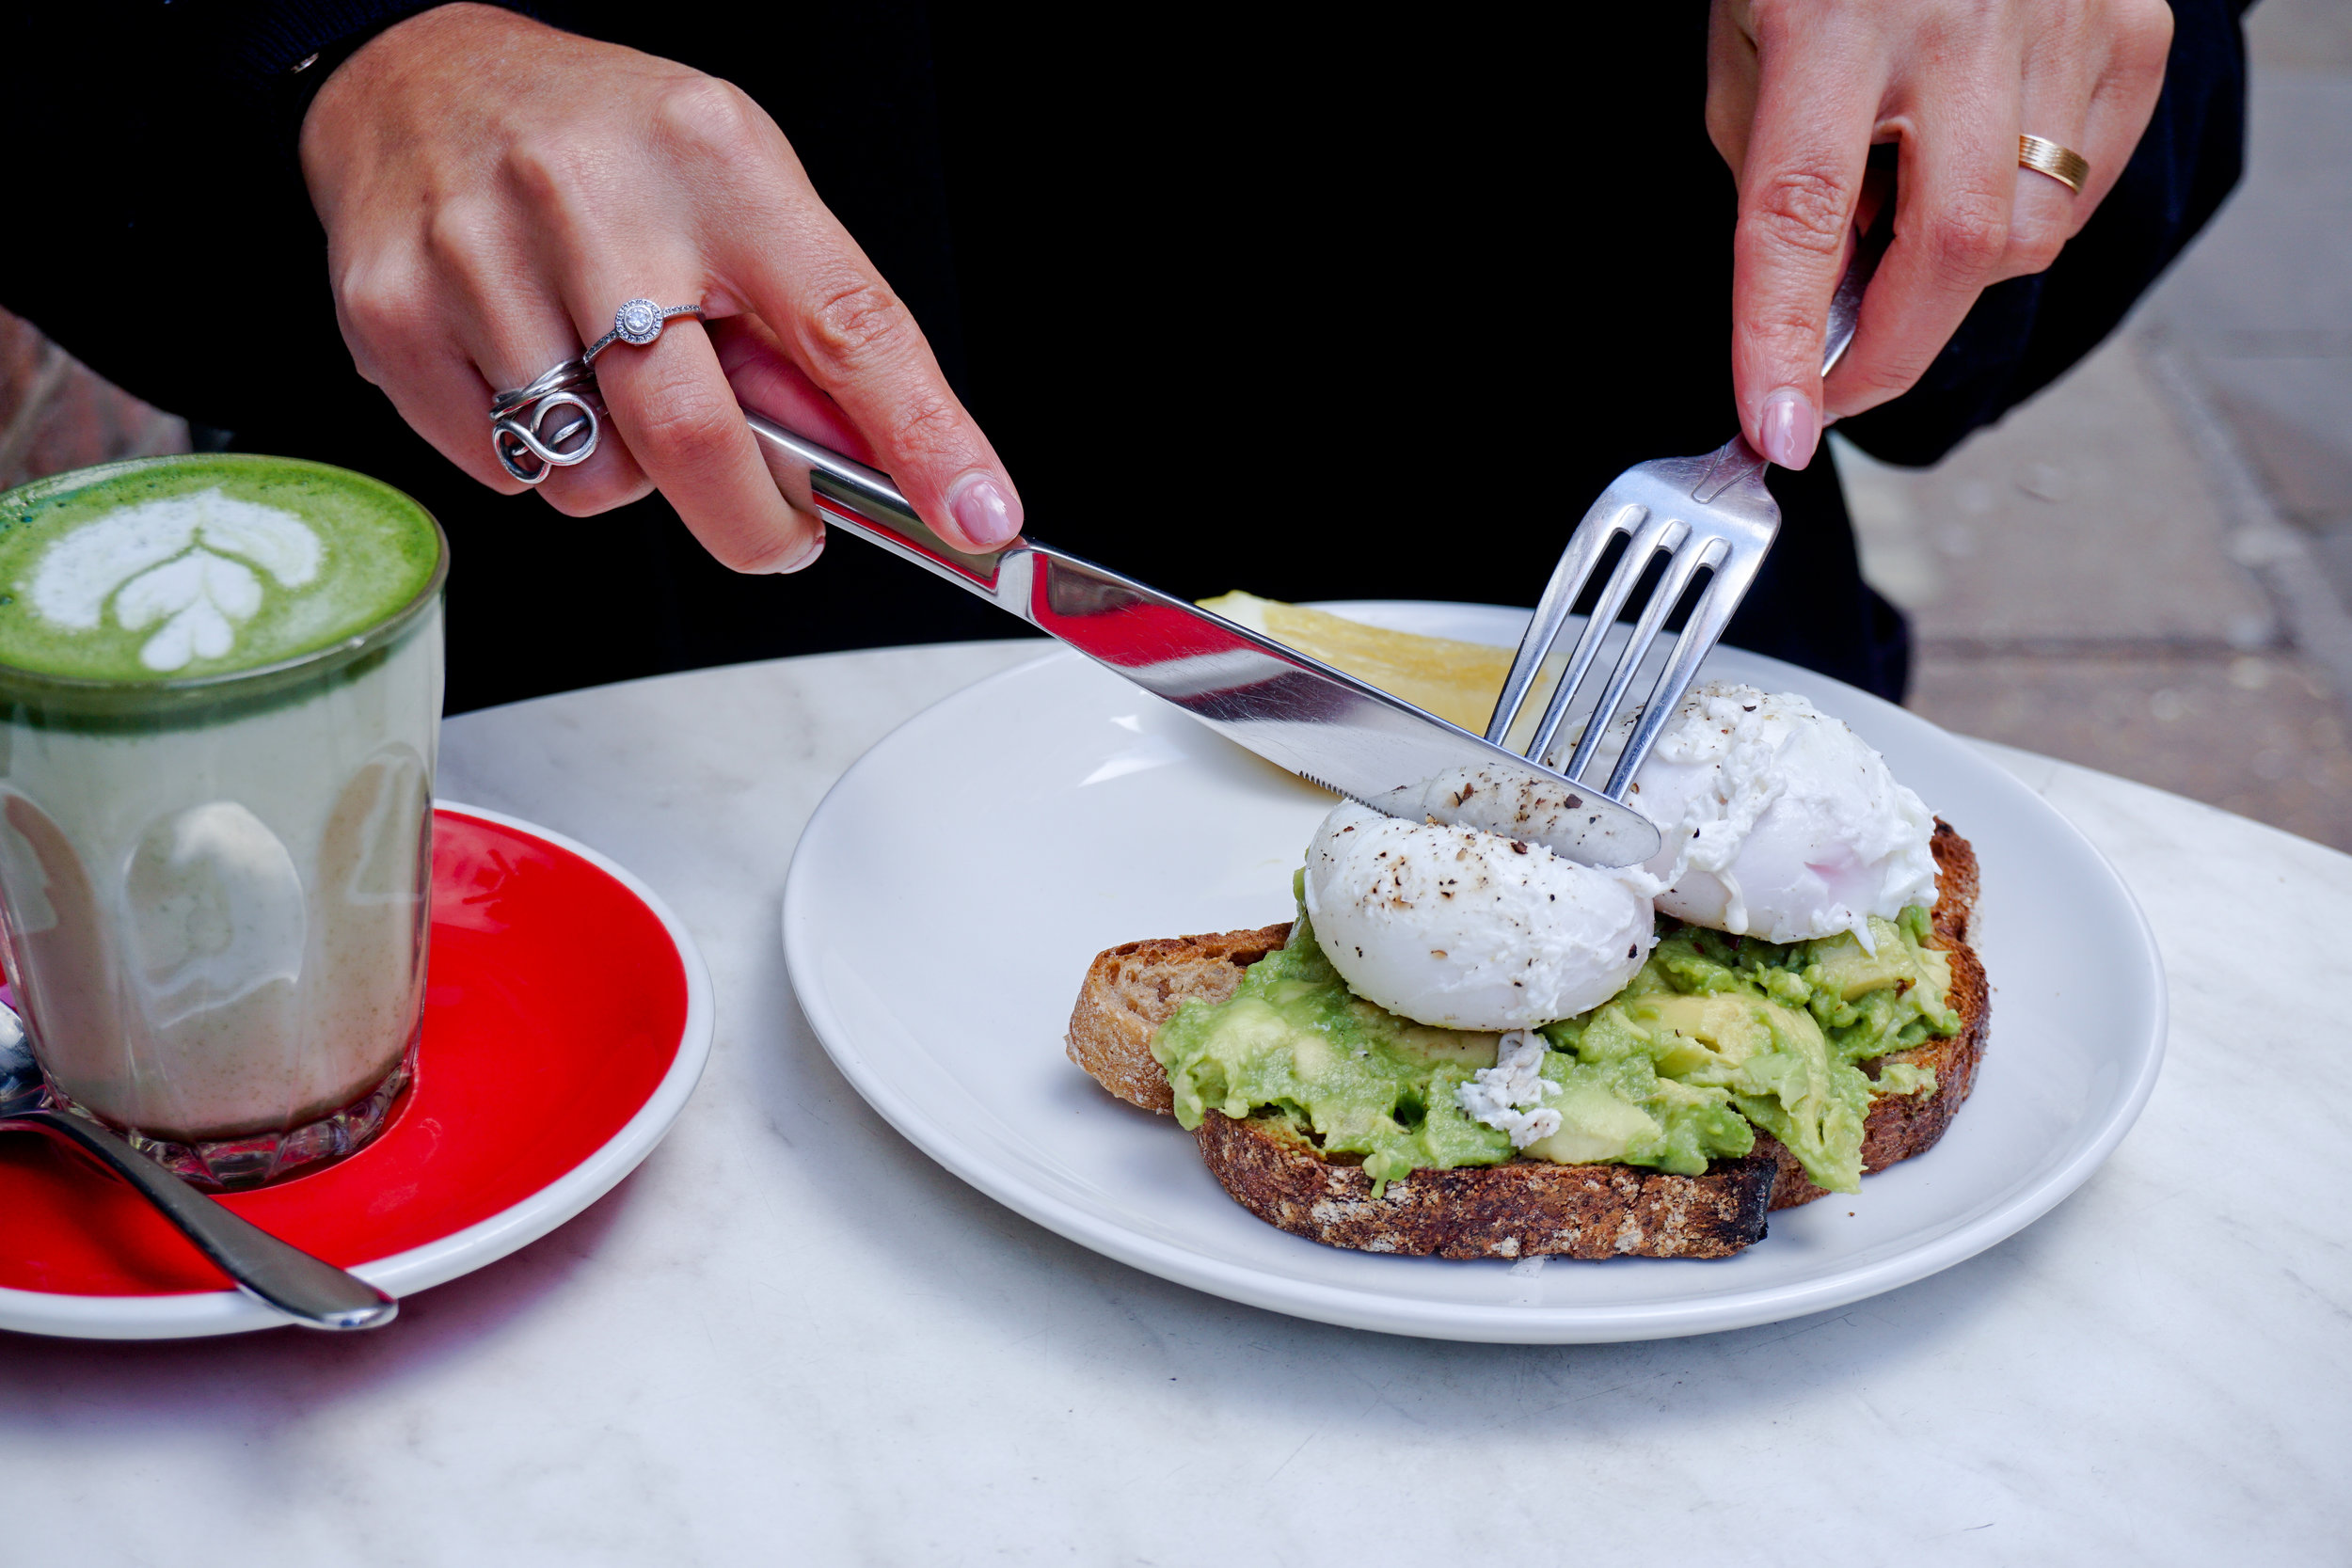 Matcha Latte & Avocado, Poached Eggs on Toast